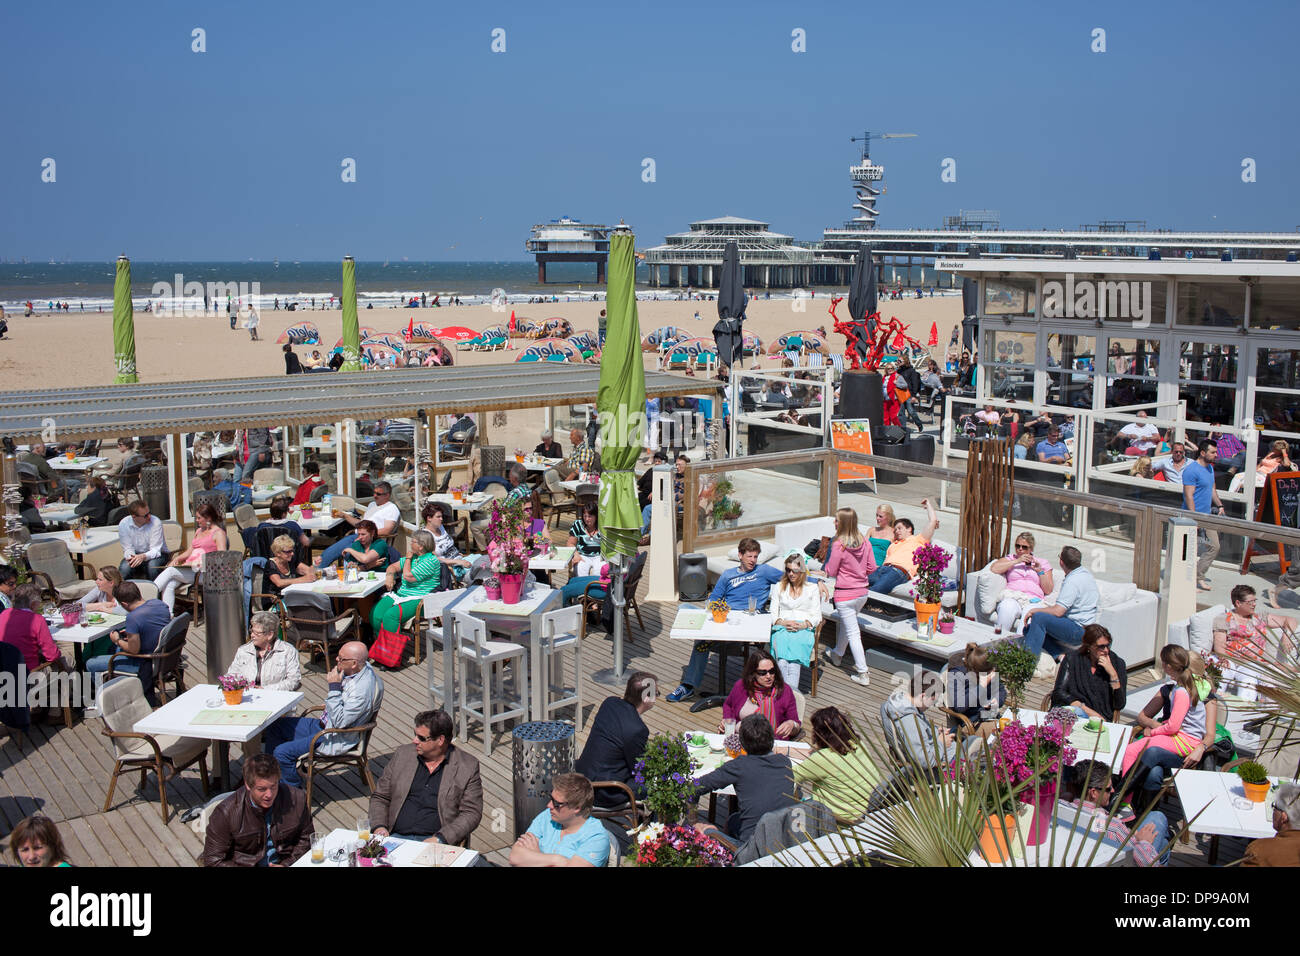 El Nino Scheveningen Beach Bar Scheveningen Stock Photos And Beach Bar